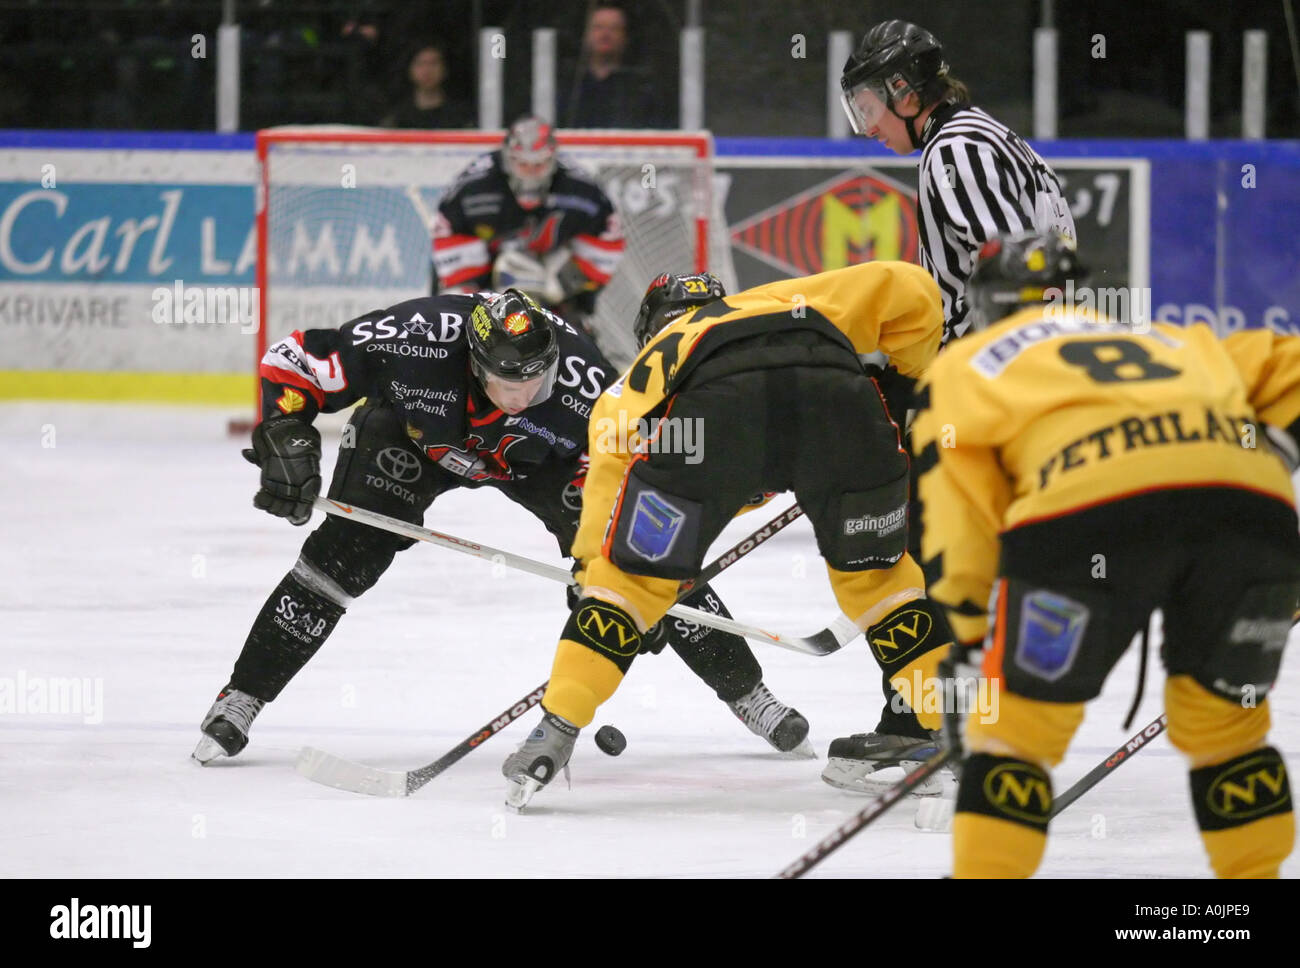 Face off at an ice hockey game - Stock Image